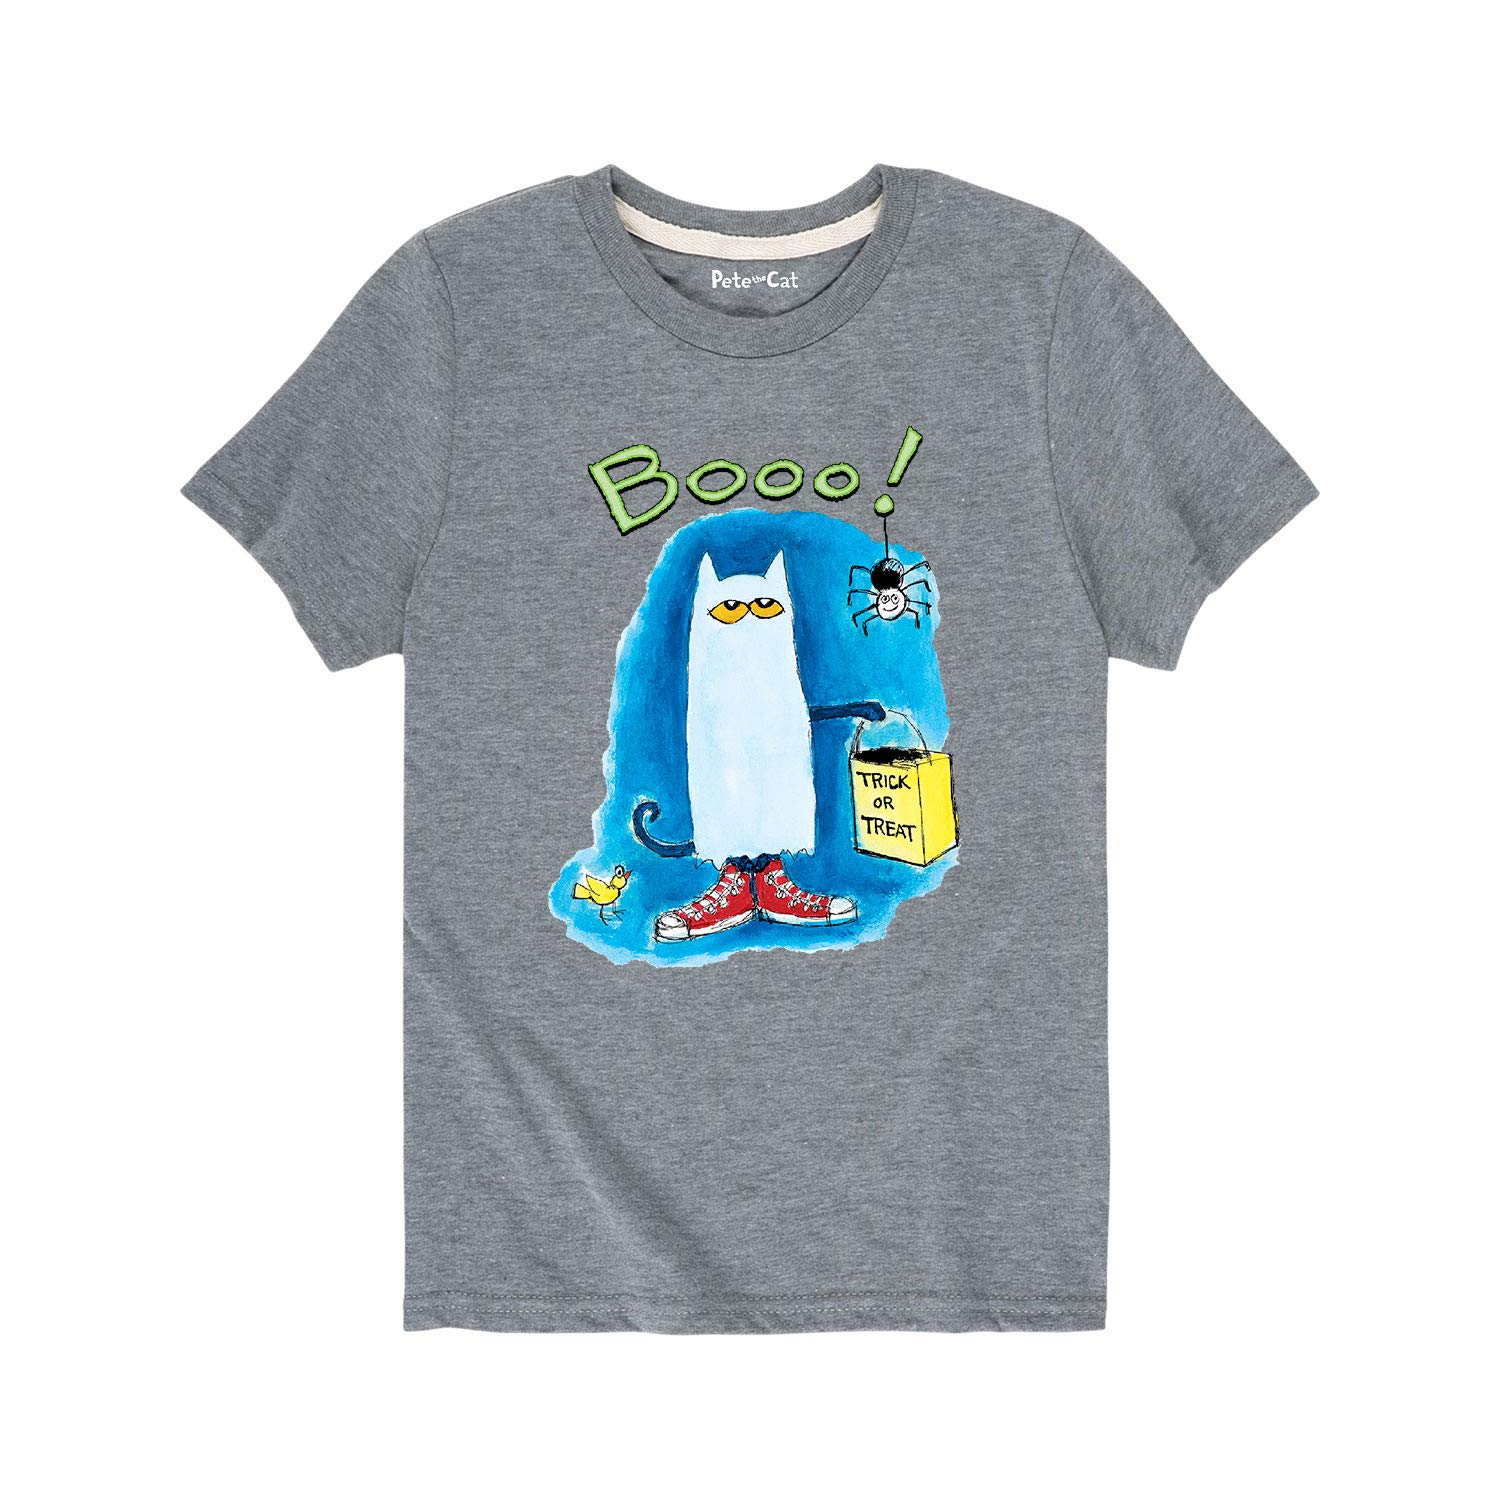 Pete the Cat Boo! Toddler Short Sleeve Tee